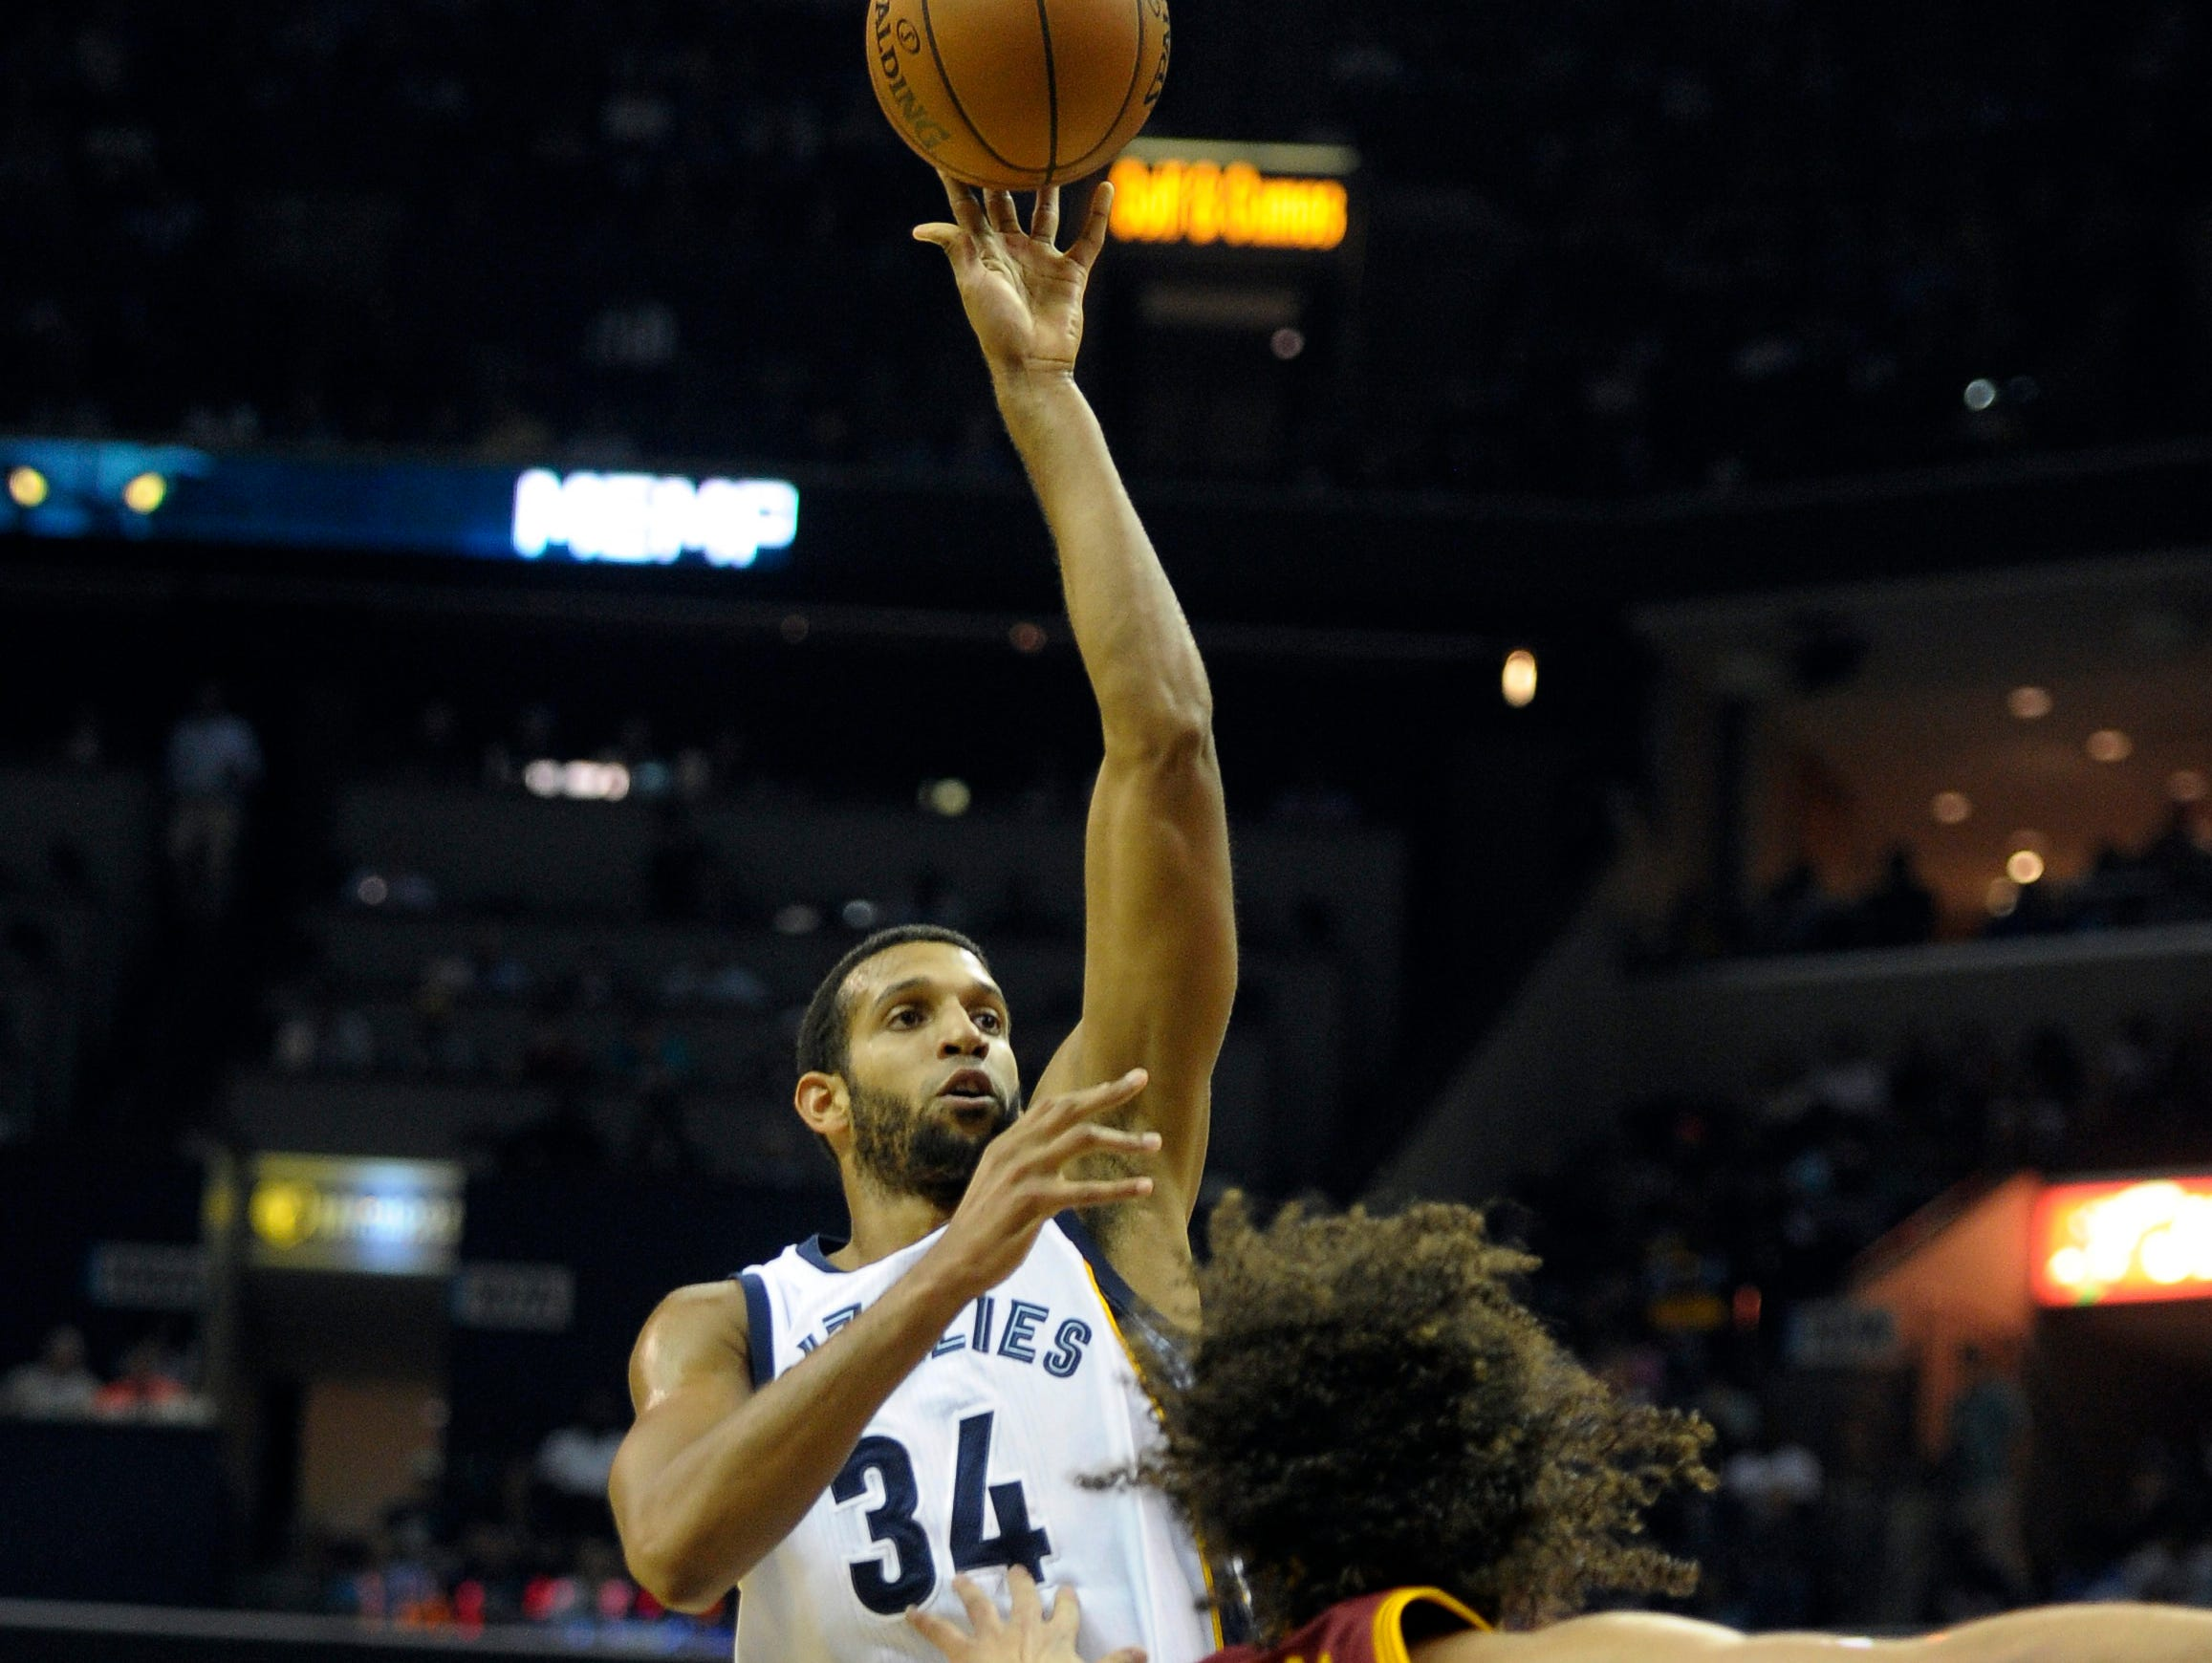 Memphis Grizzlies forward Brandan Wright (34) shoots over Cleveland Cavaliers forward Anderson Varejao (17) in Wednesday's opener.